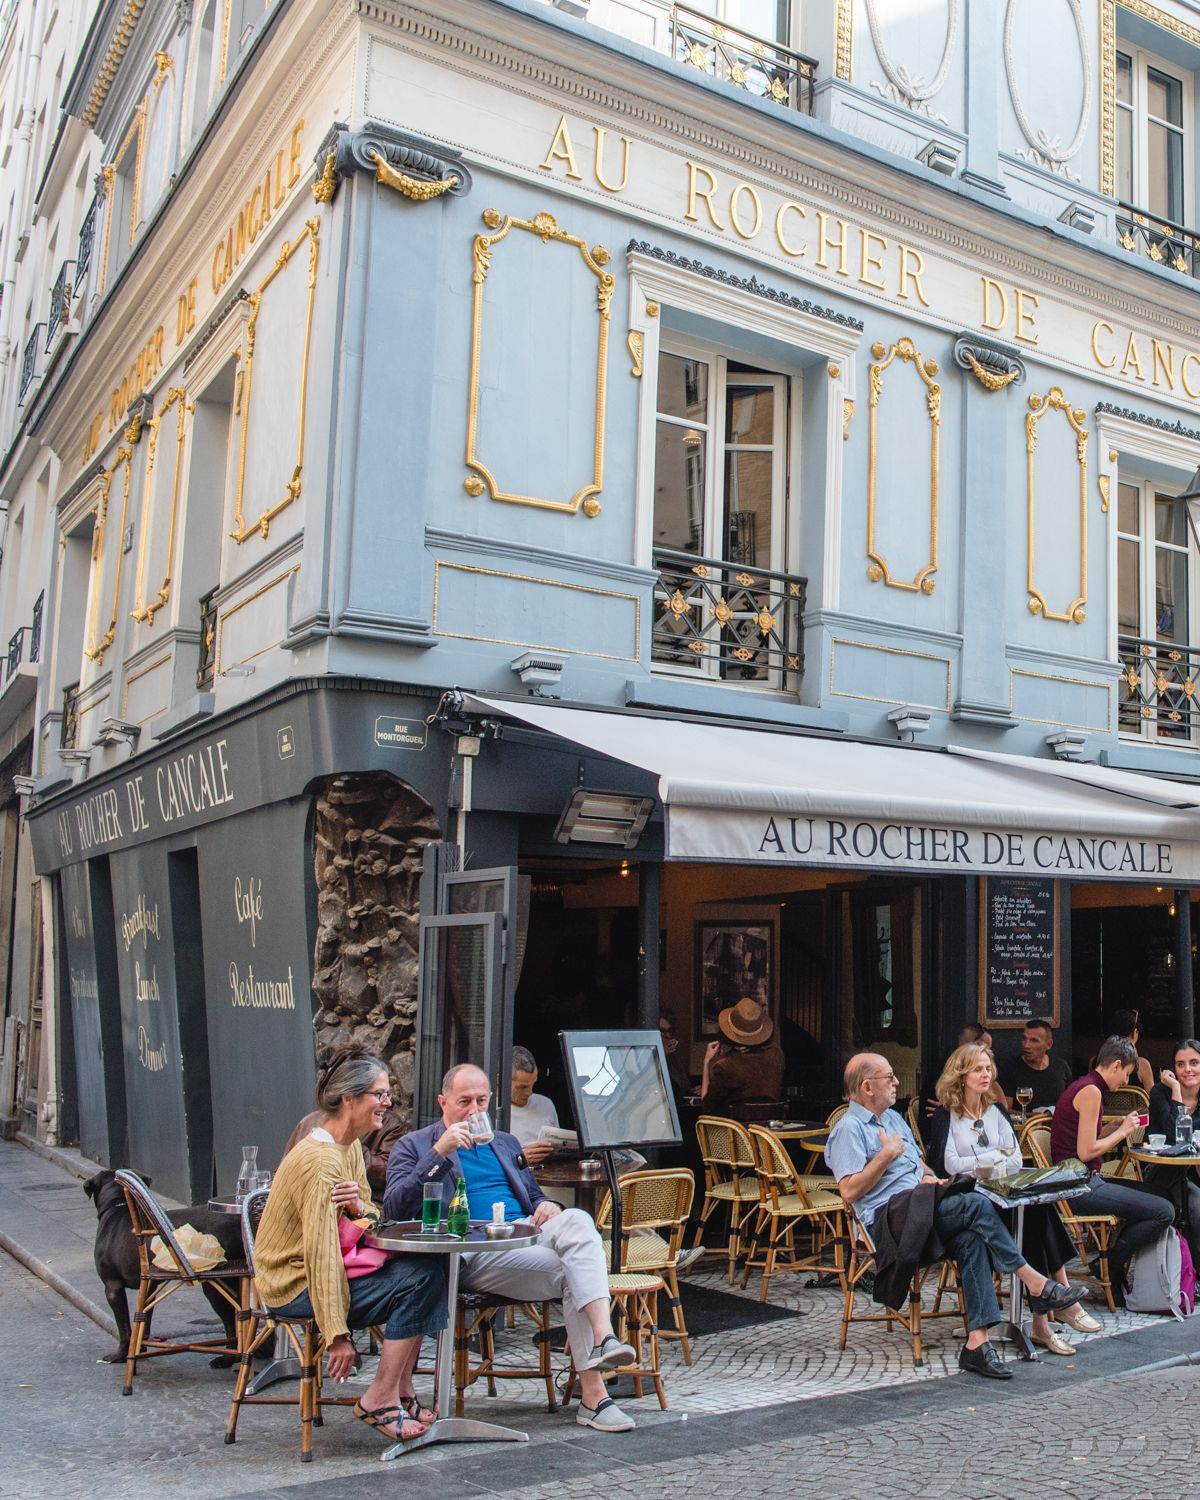 Outdoor cafe in paris with tower in background - The Best Of Rue Montorgeuil In Paris Where To Eat Drink And Shop